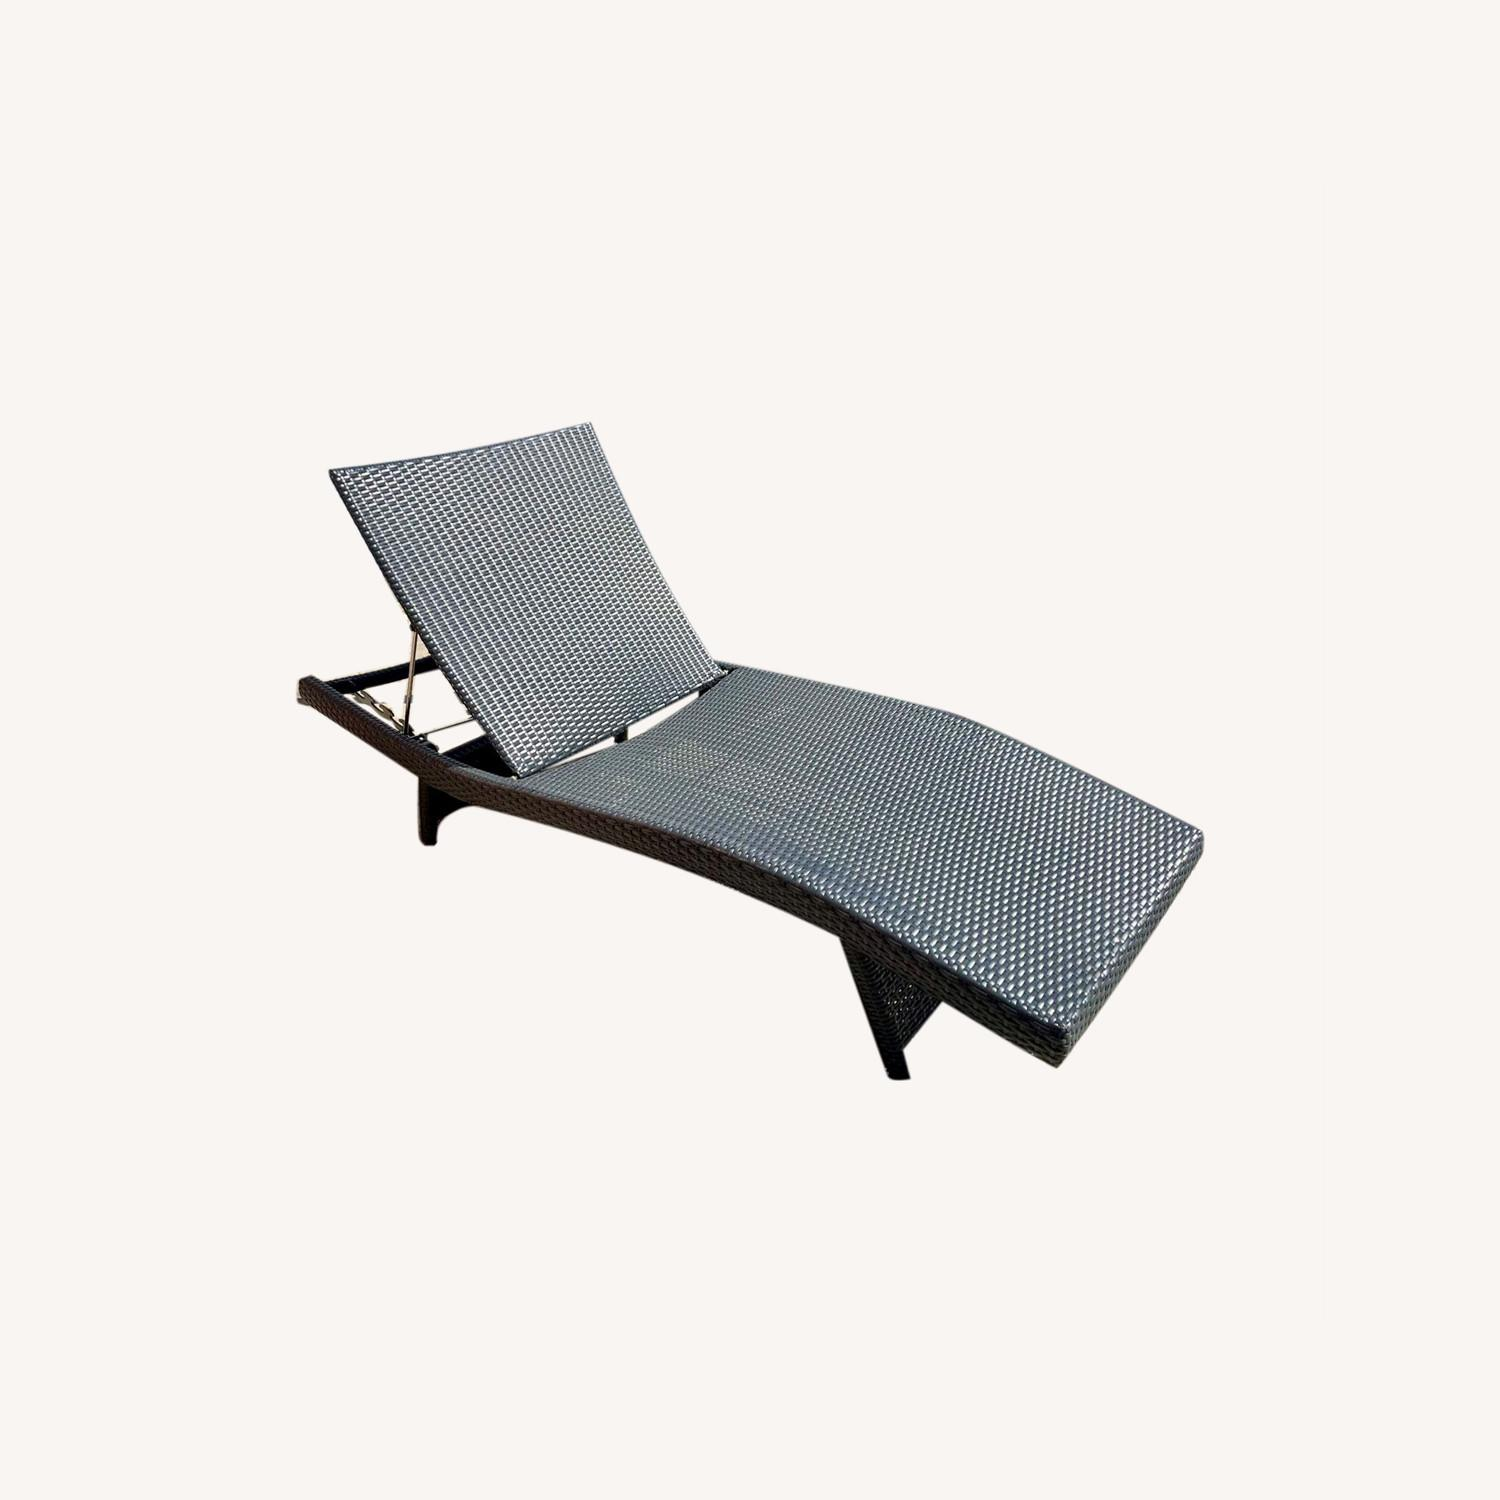 Original Balencia Black Chaise Lounges, Set of Two - image-0